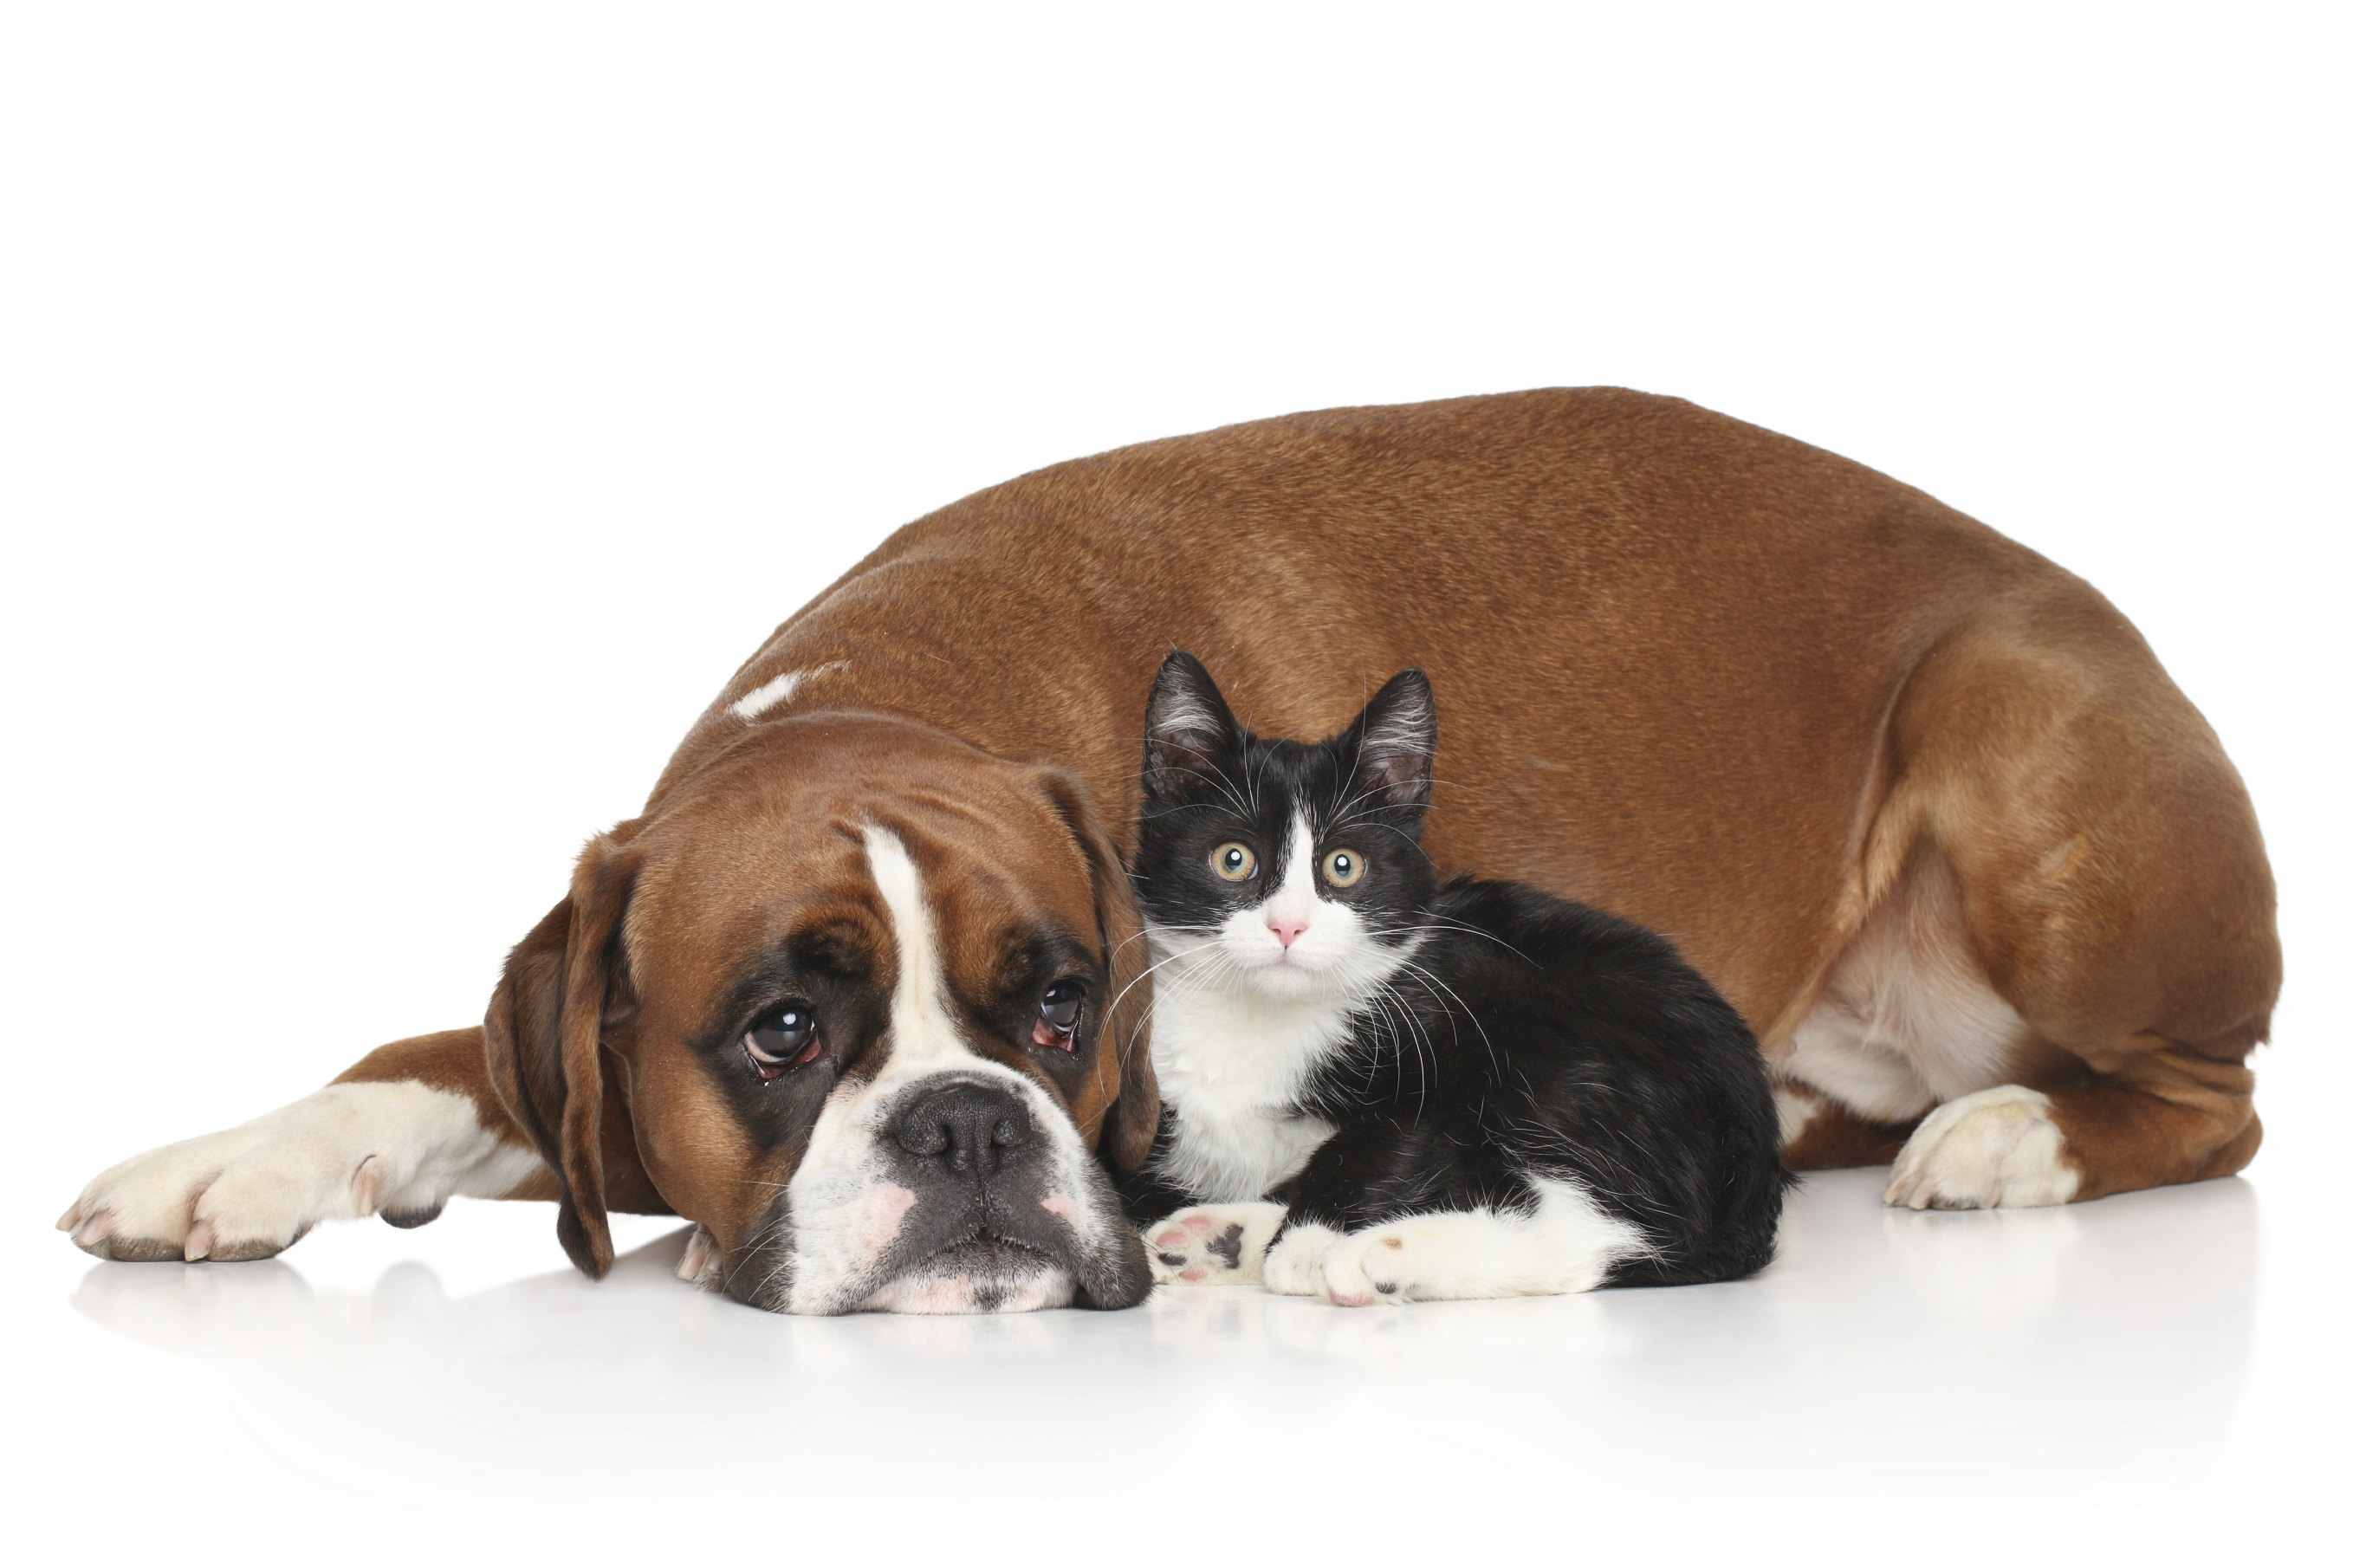 Dog and Cat together lying down on white background